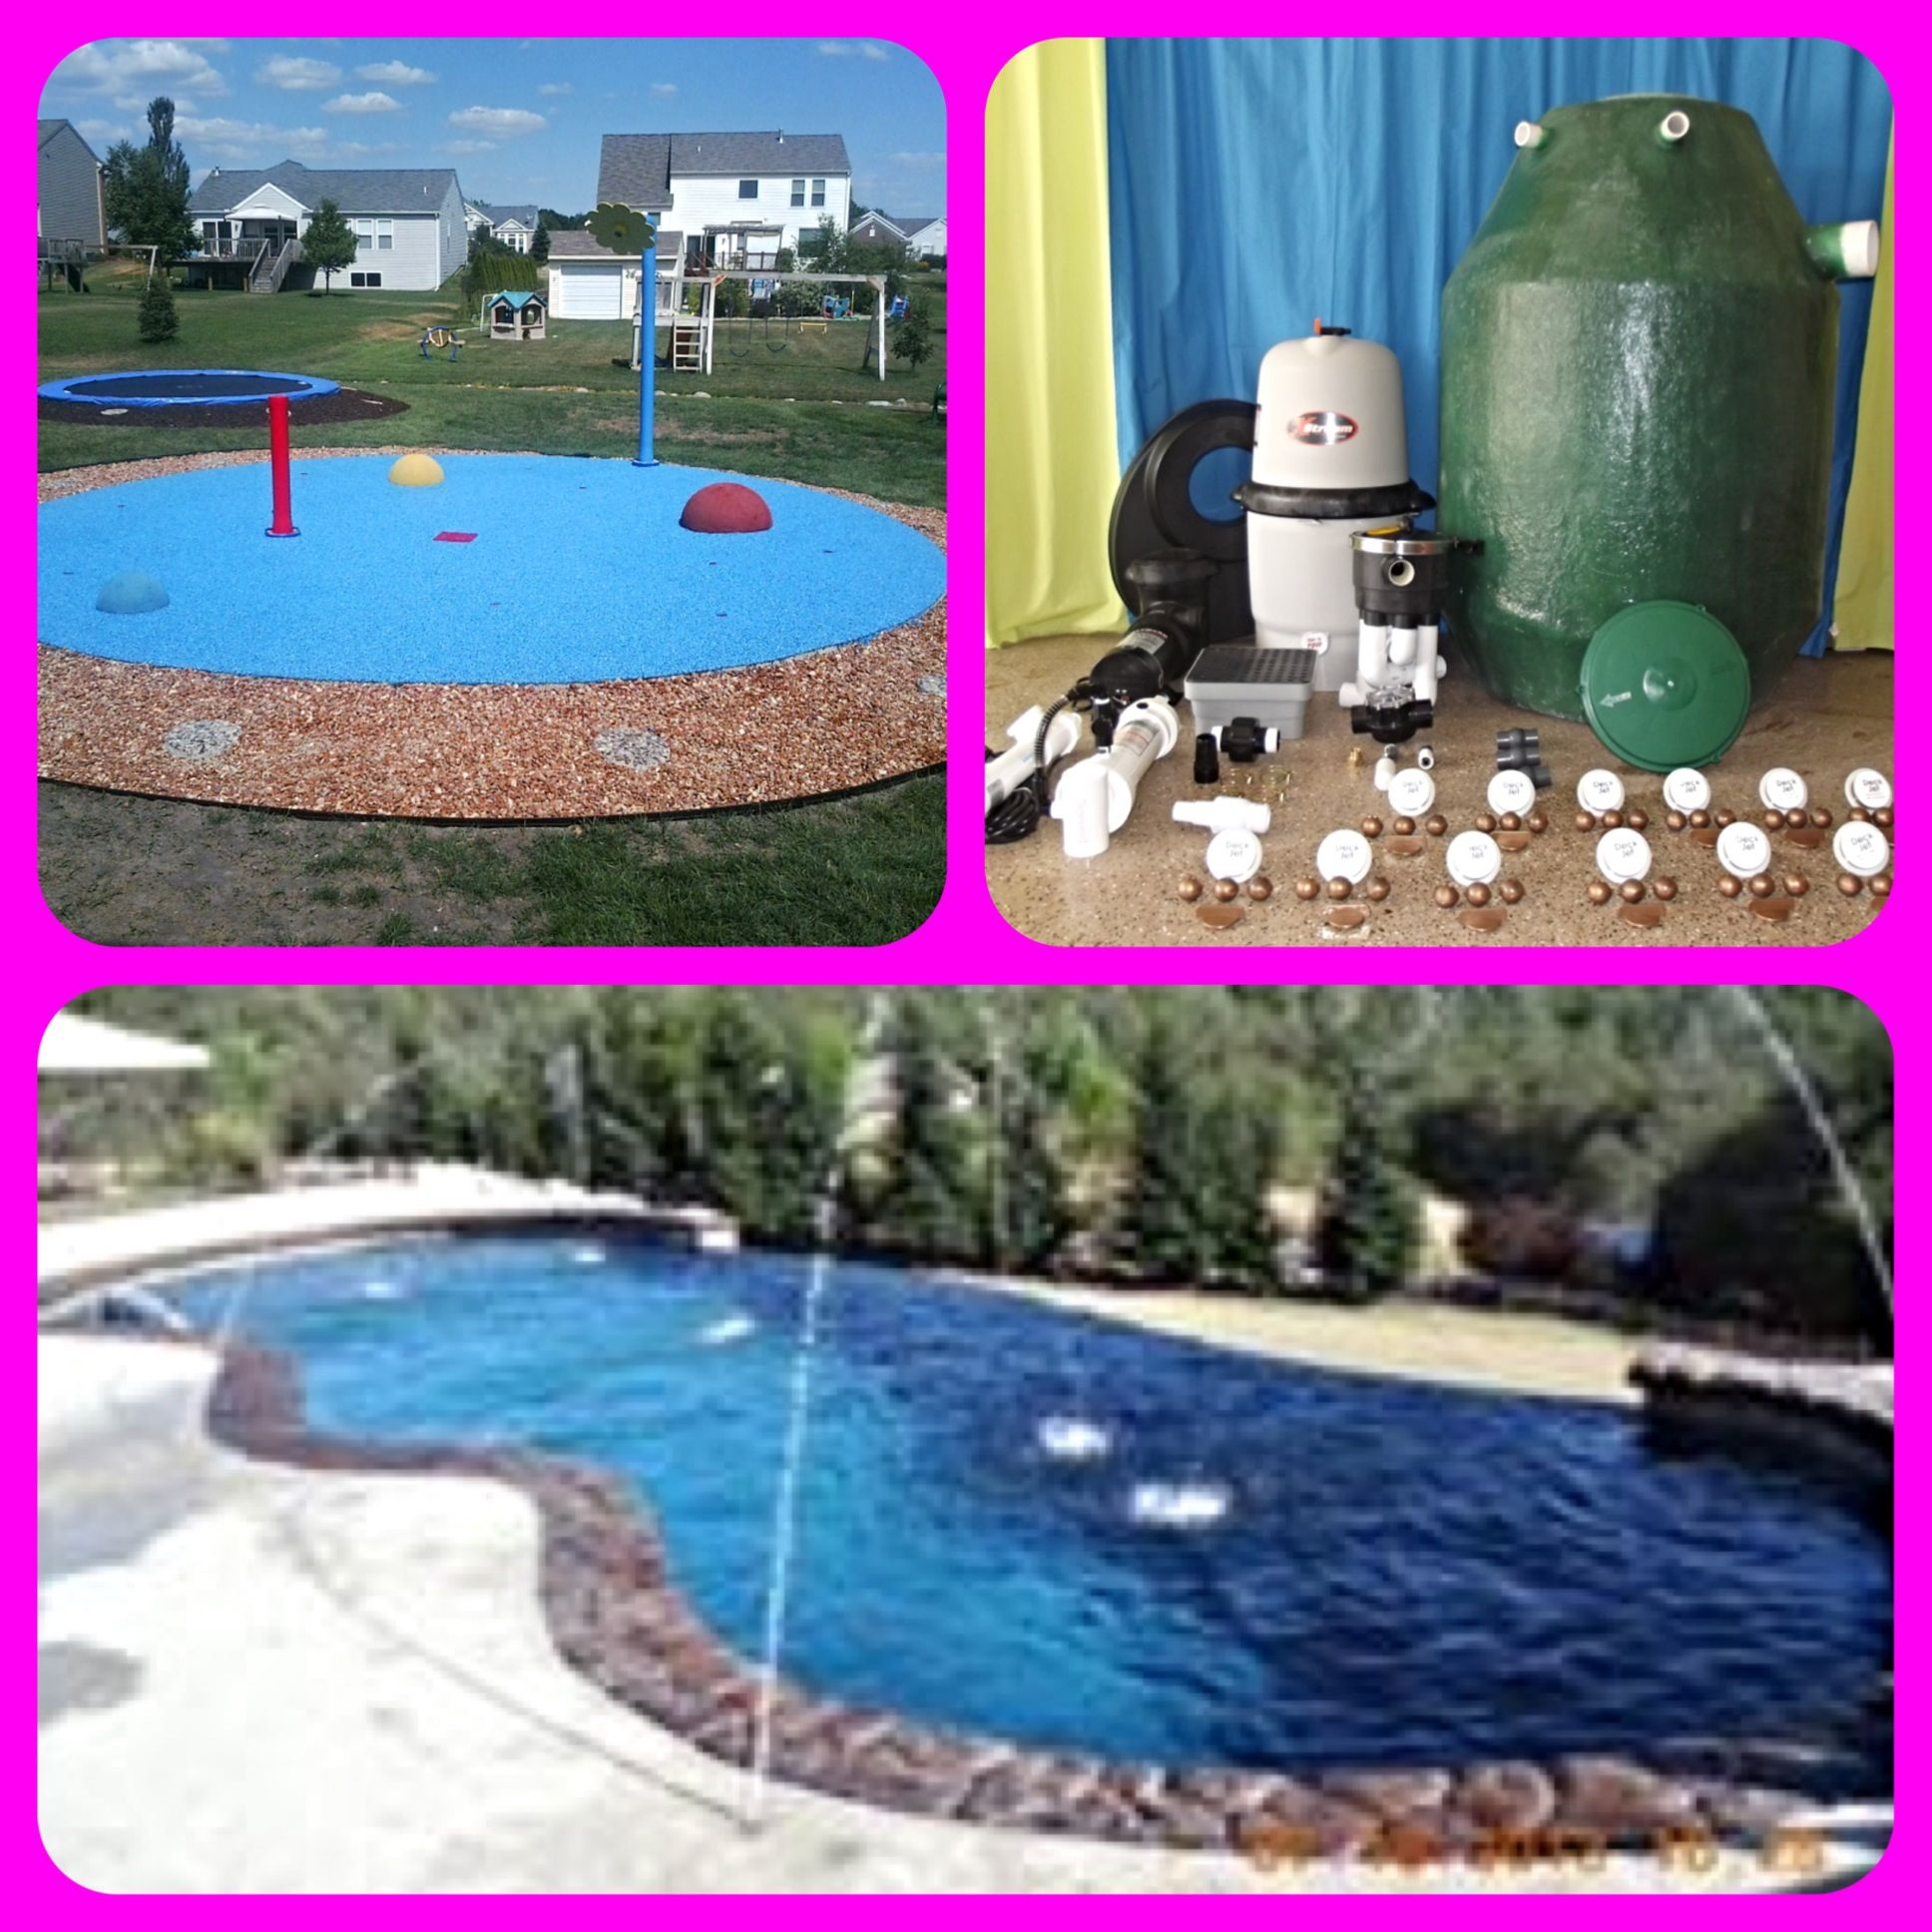 My Splash Pad Residential Backyard Splash Park Install, DIY Splash Pad Kit  And Add Dimension